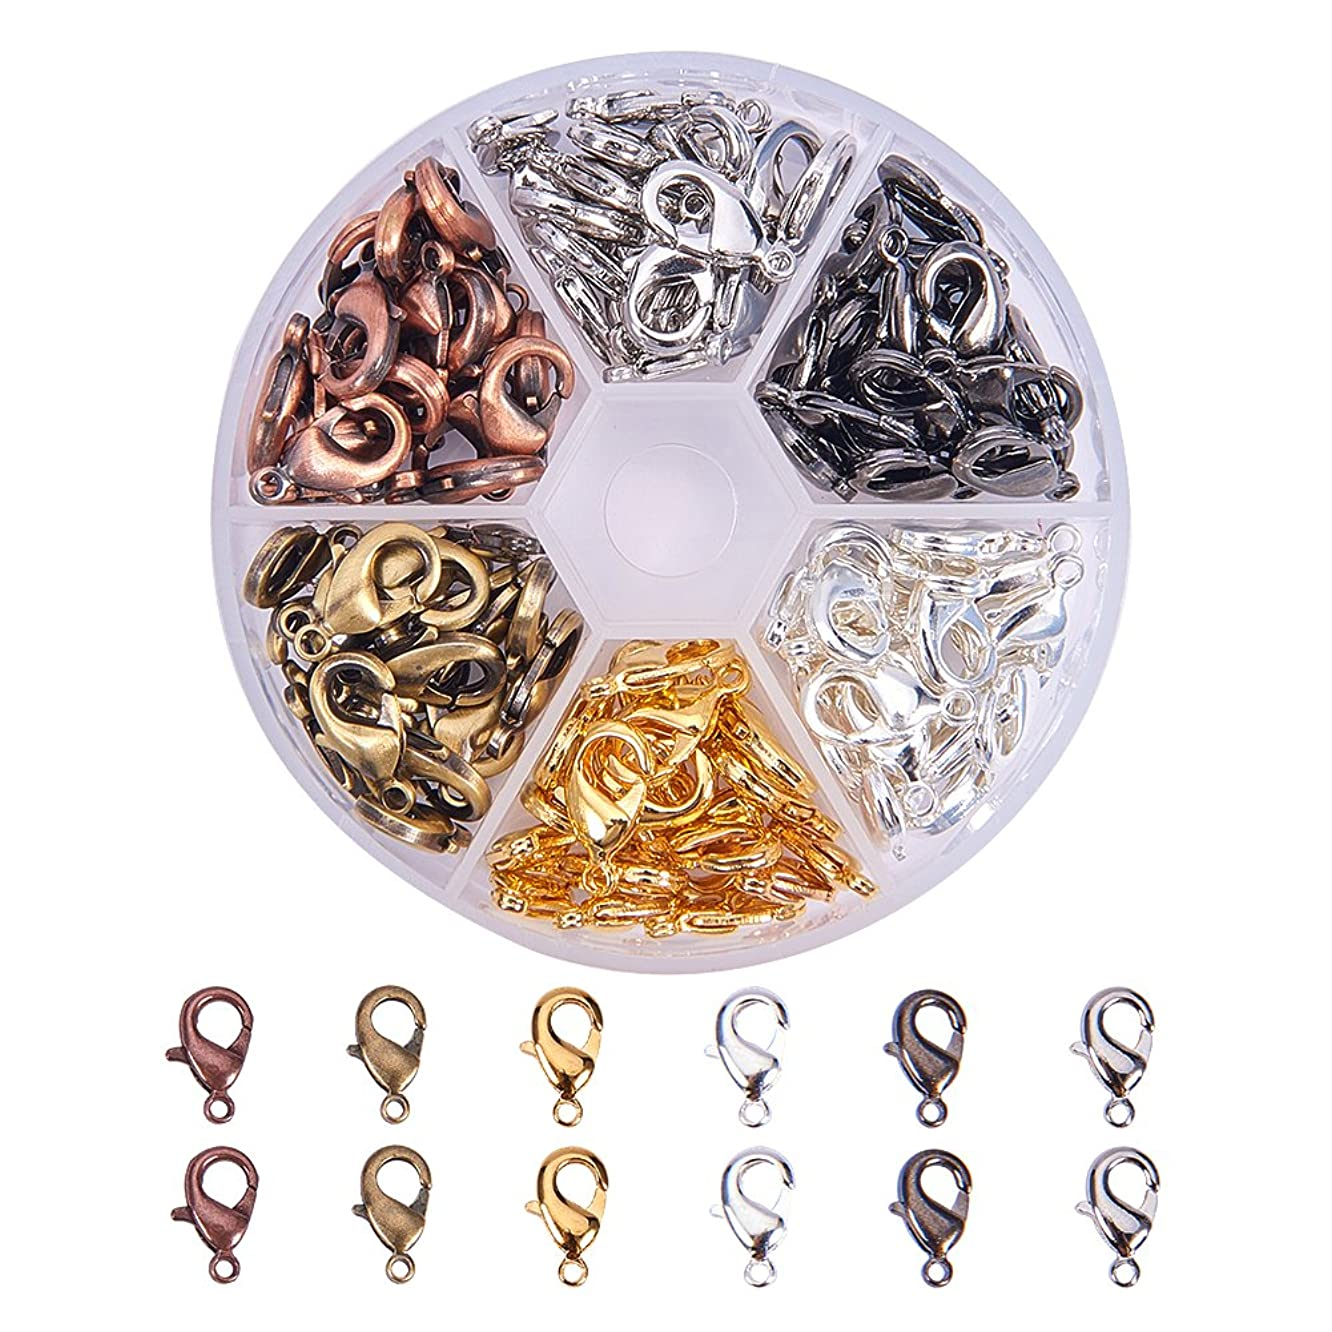 Pandahall Elite 120 Pcs Brass Lobster Claw Clasps Cord End 15x8mm for Jewelry Making 6 Colors